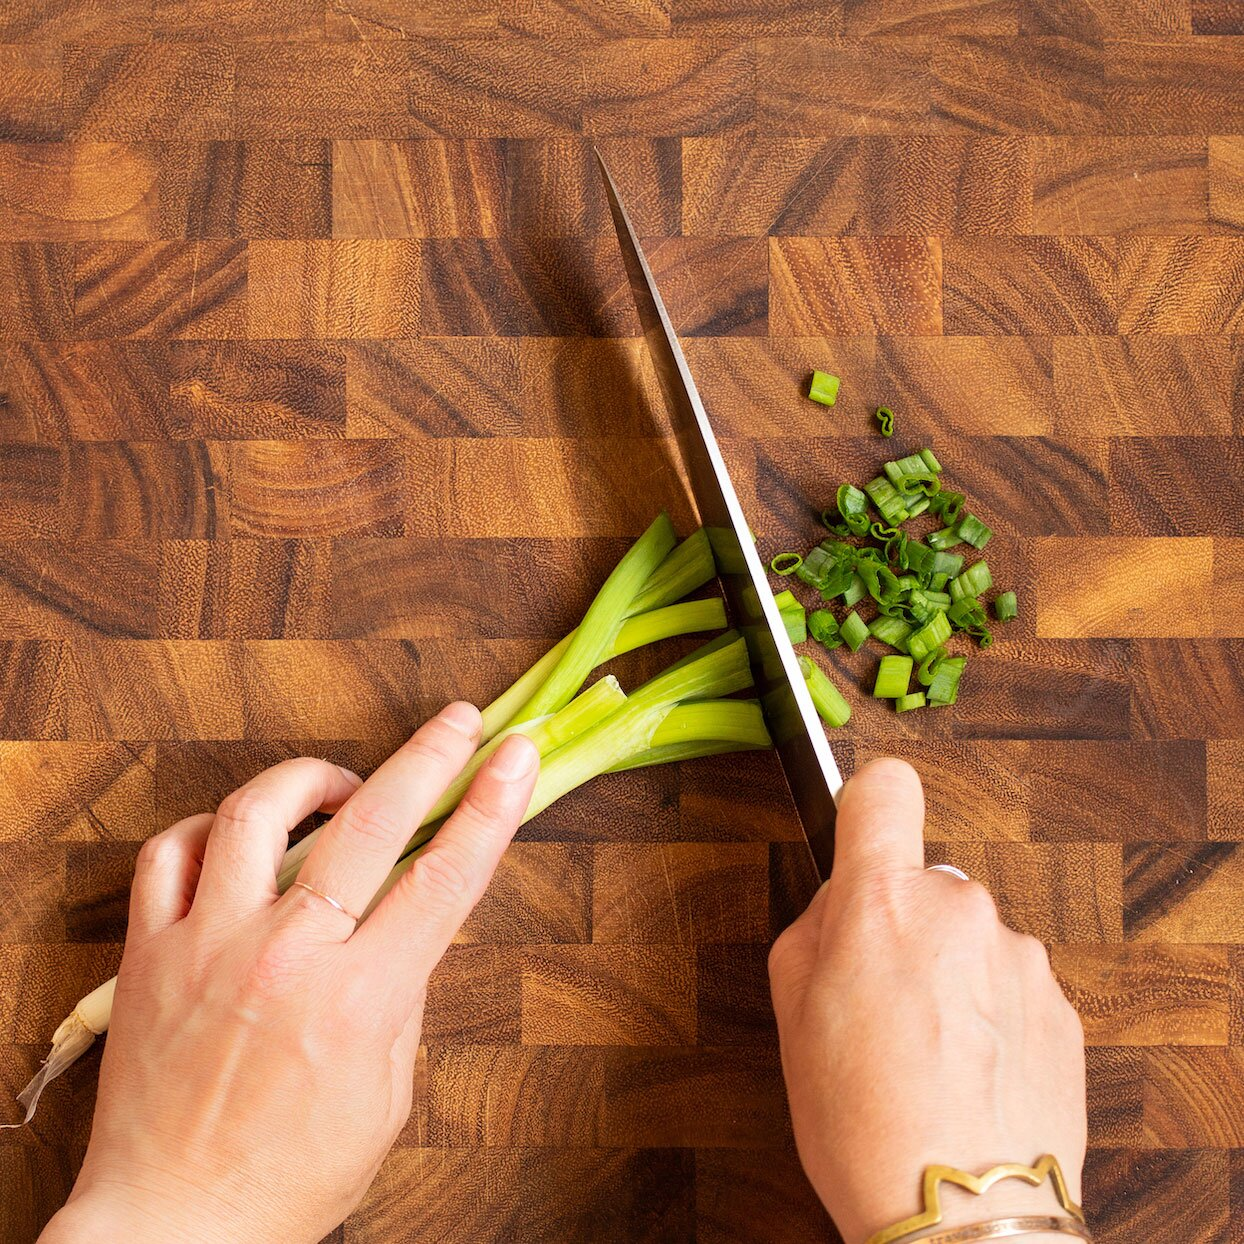 Cutting green onions into round pieces on a wooden cutting board